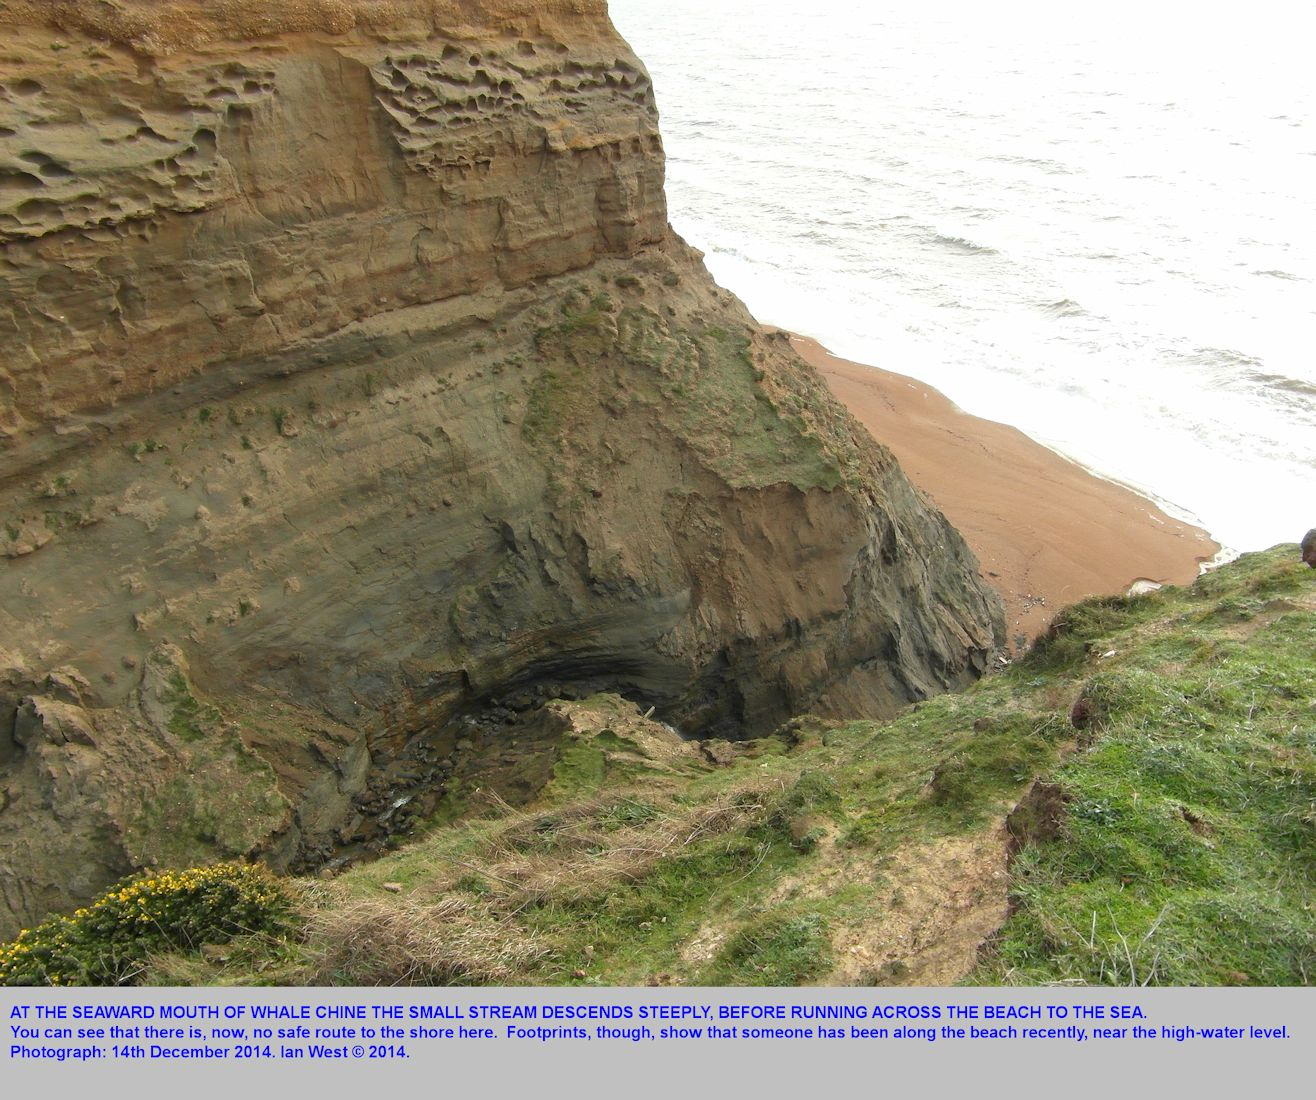 The outer and lower part of Whale Chine, Isle of Wight, with the stream descending steeply before reaching the shore and crossing the beach, 14th December 2014